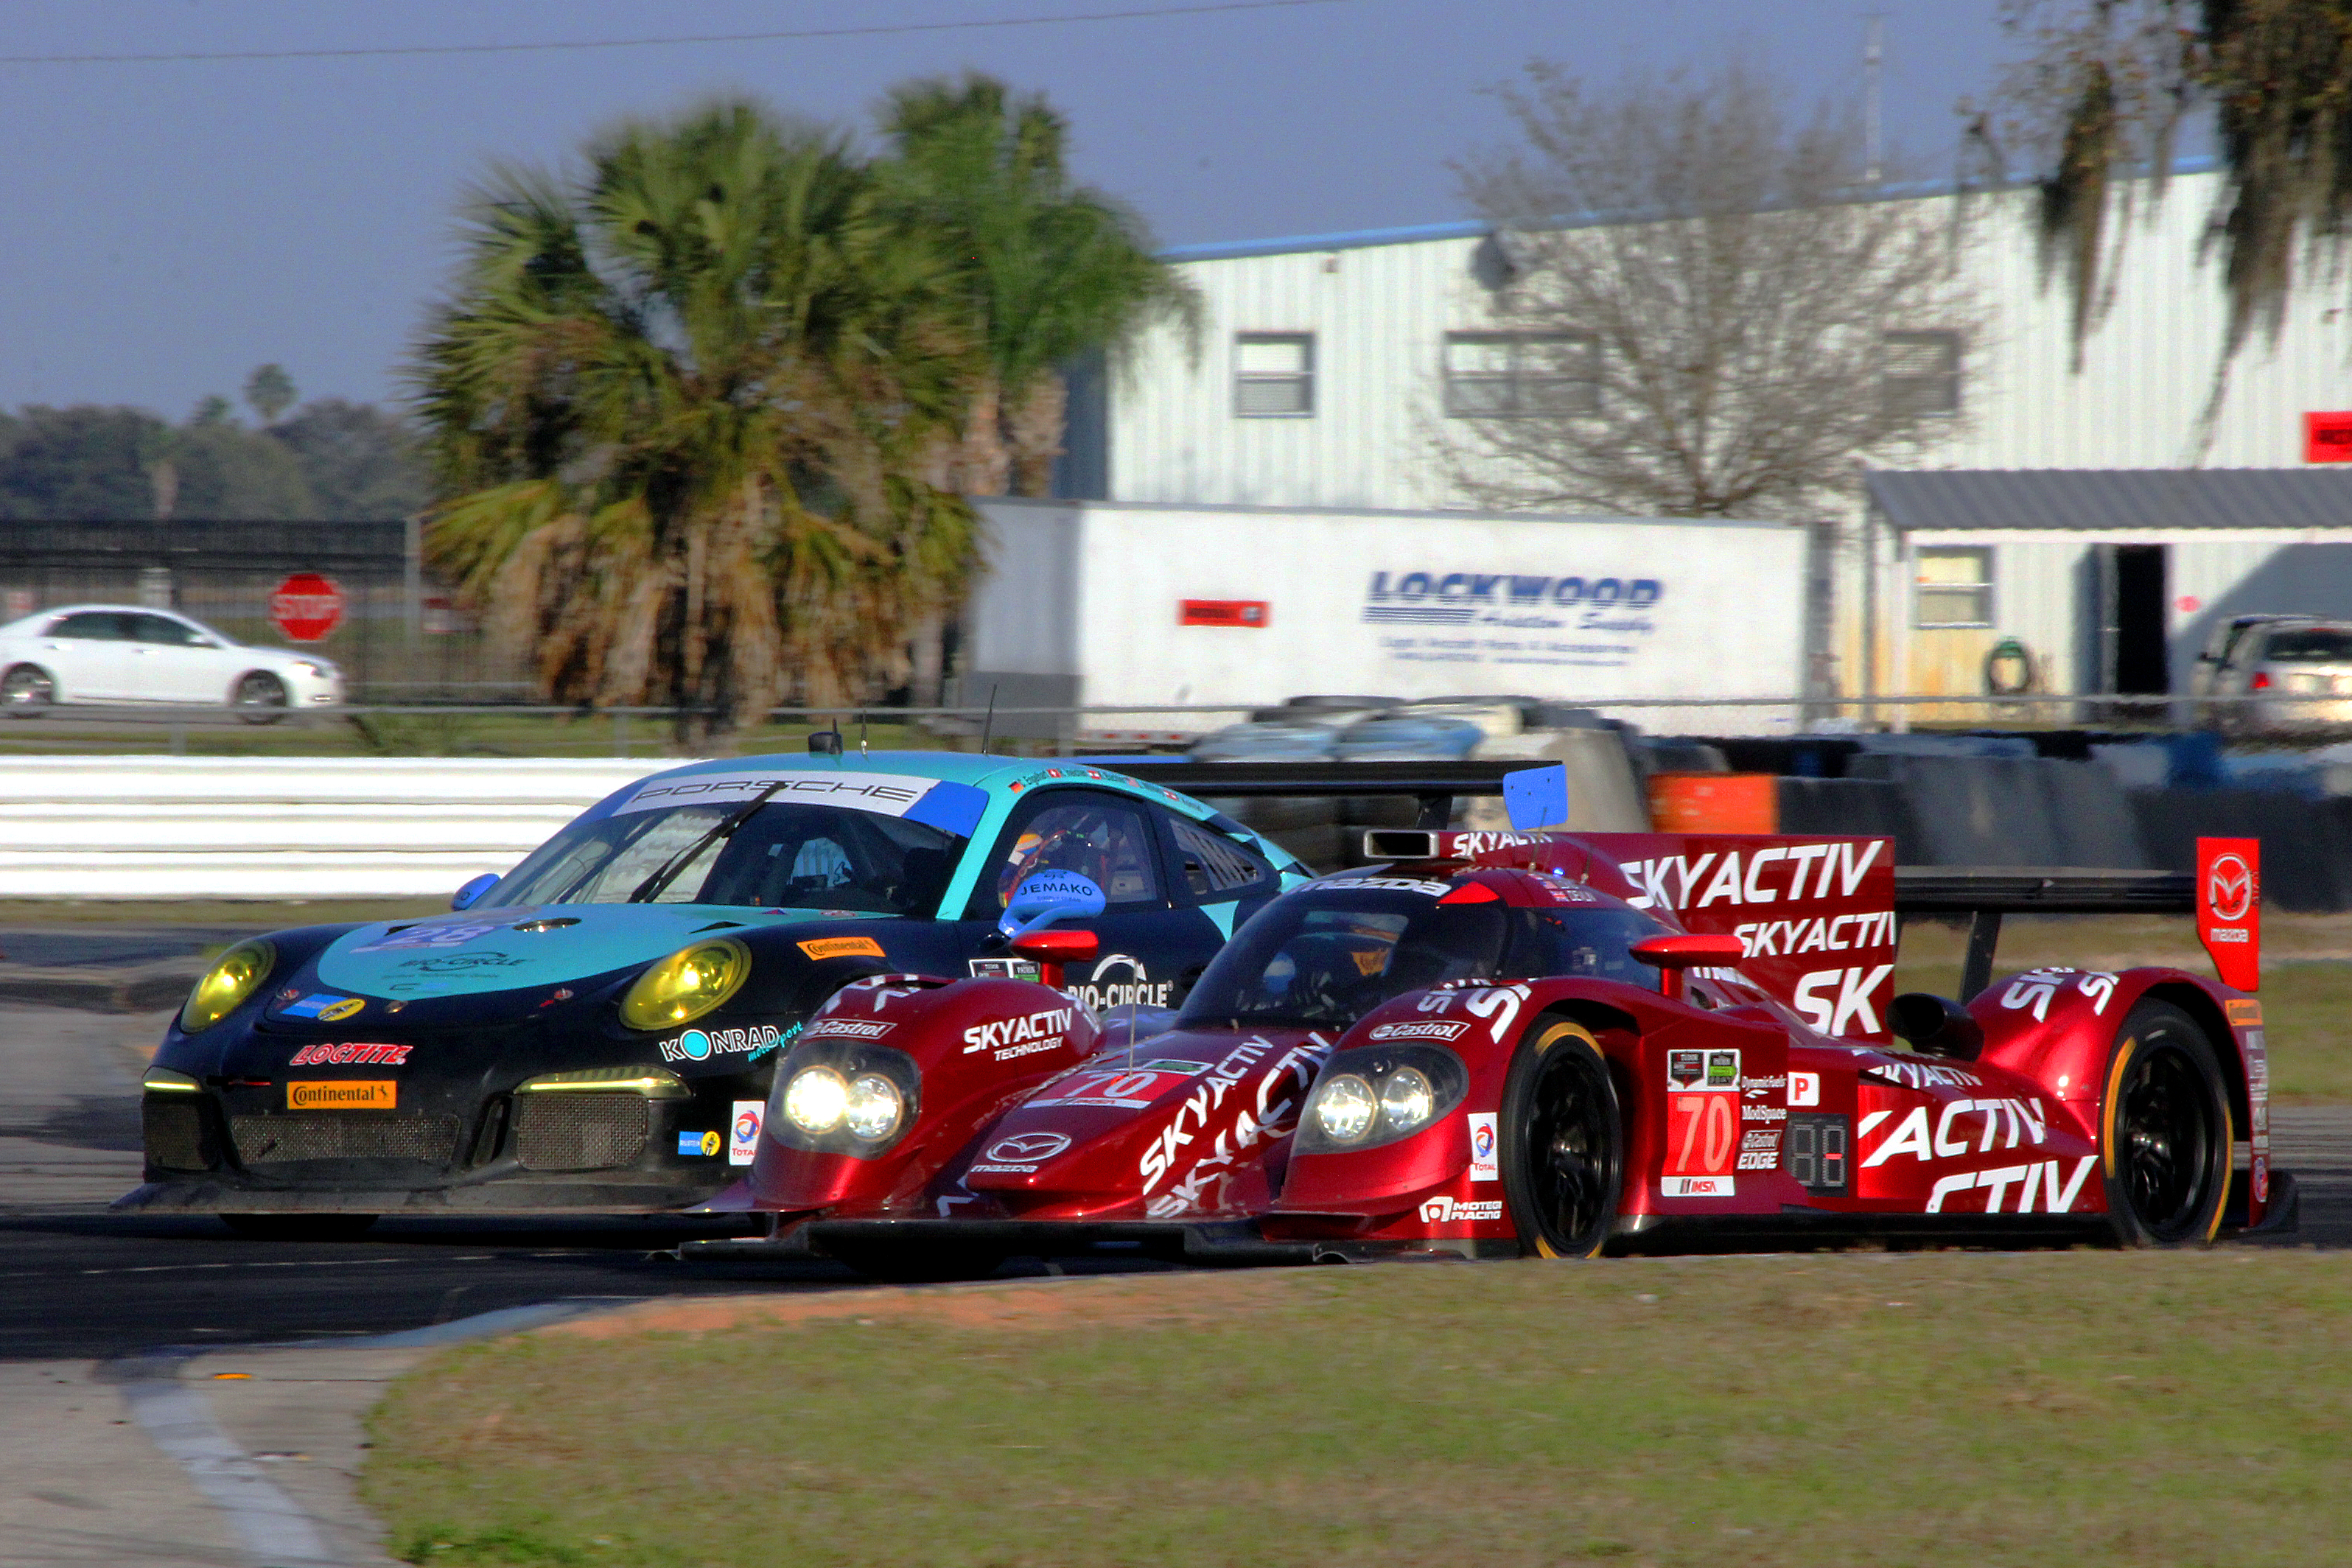 The #70 SpeedSource Mazda SkyActiv diesel P2 squeezes inside the #28 Dempsey Racing GTD Porsche at Turn Five Thursday afternoon. (Chris Jasurek/Epoch Times)